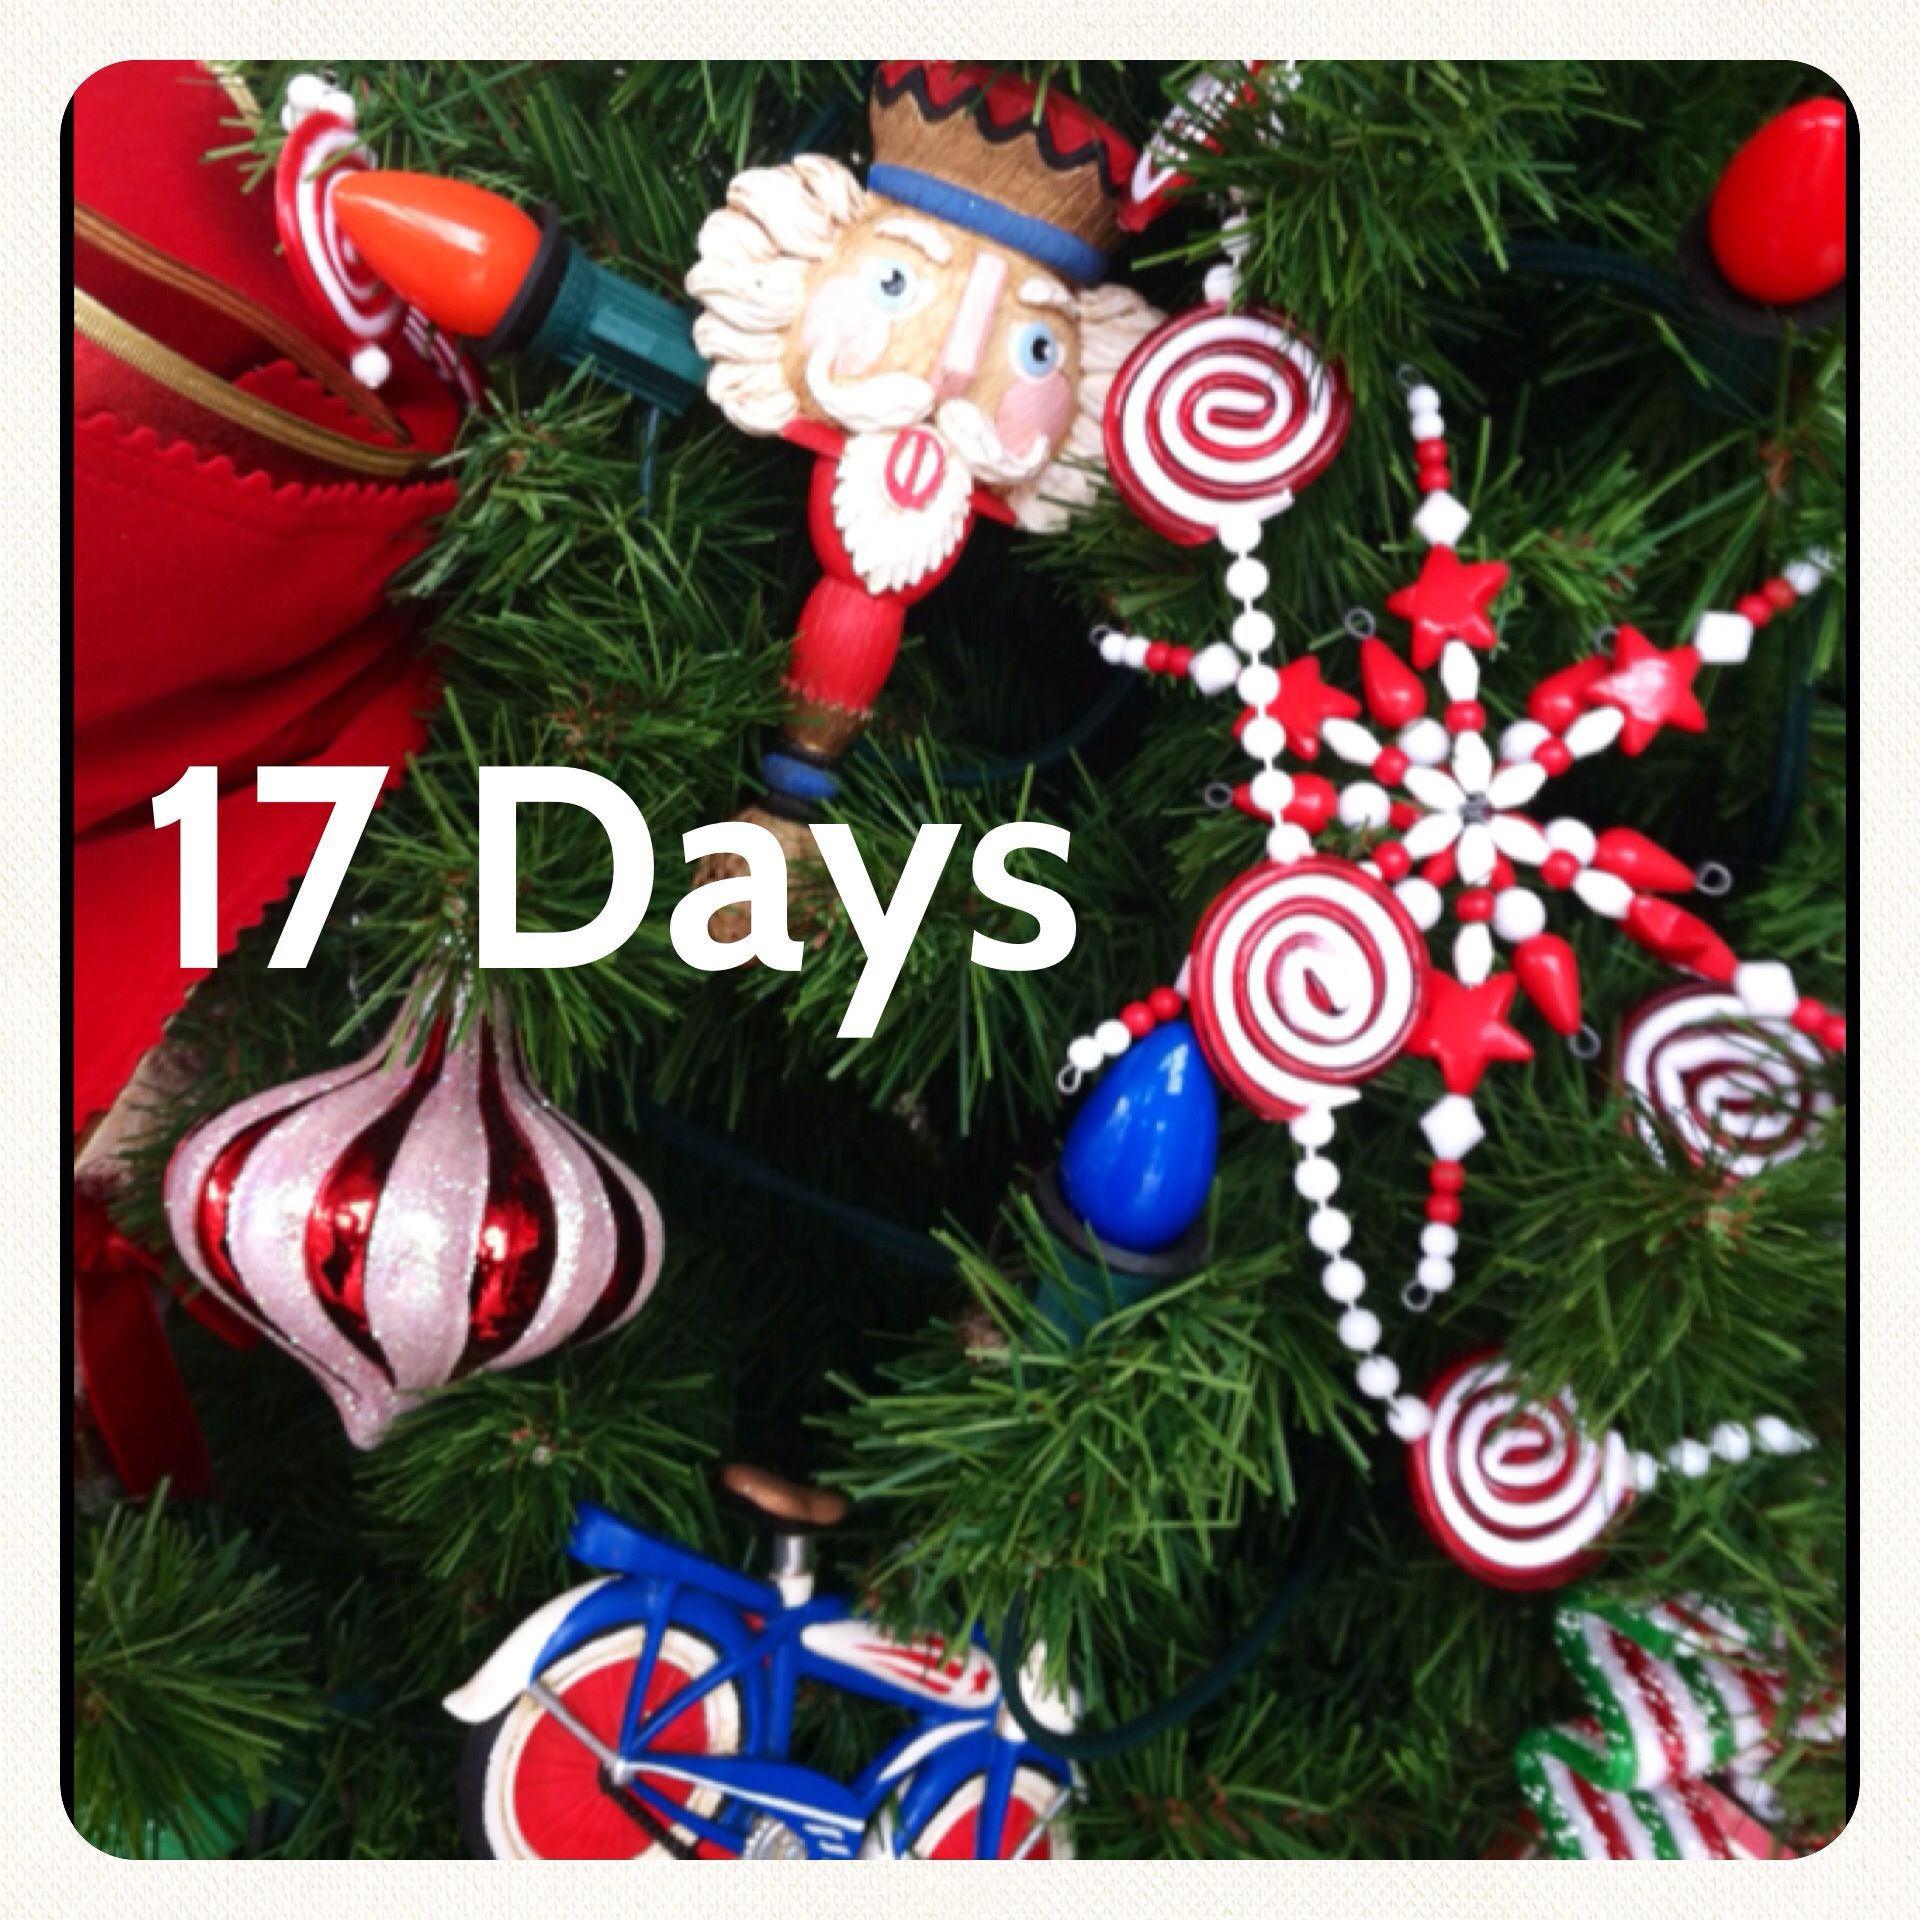 17 Days Until Christmas Christmas countdown, Christmas